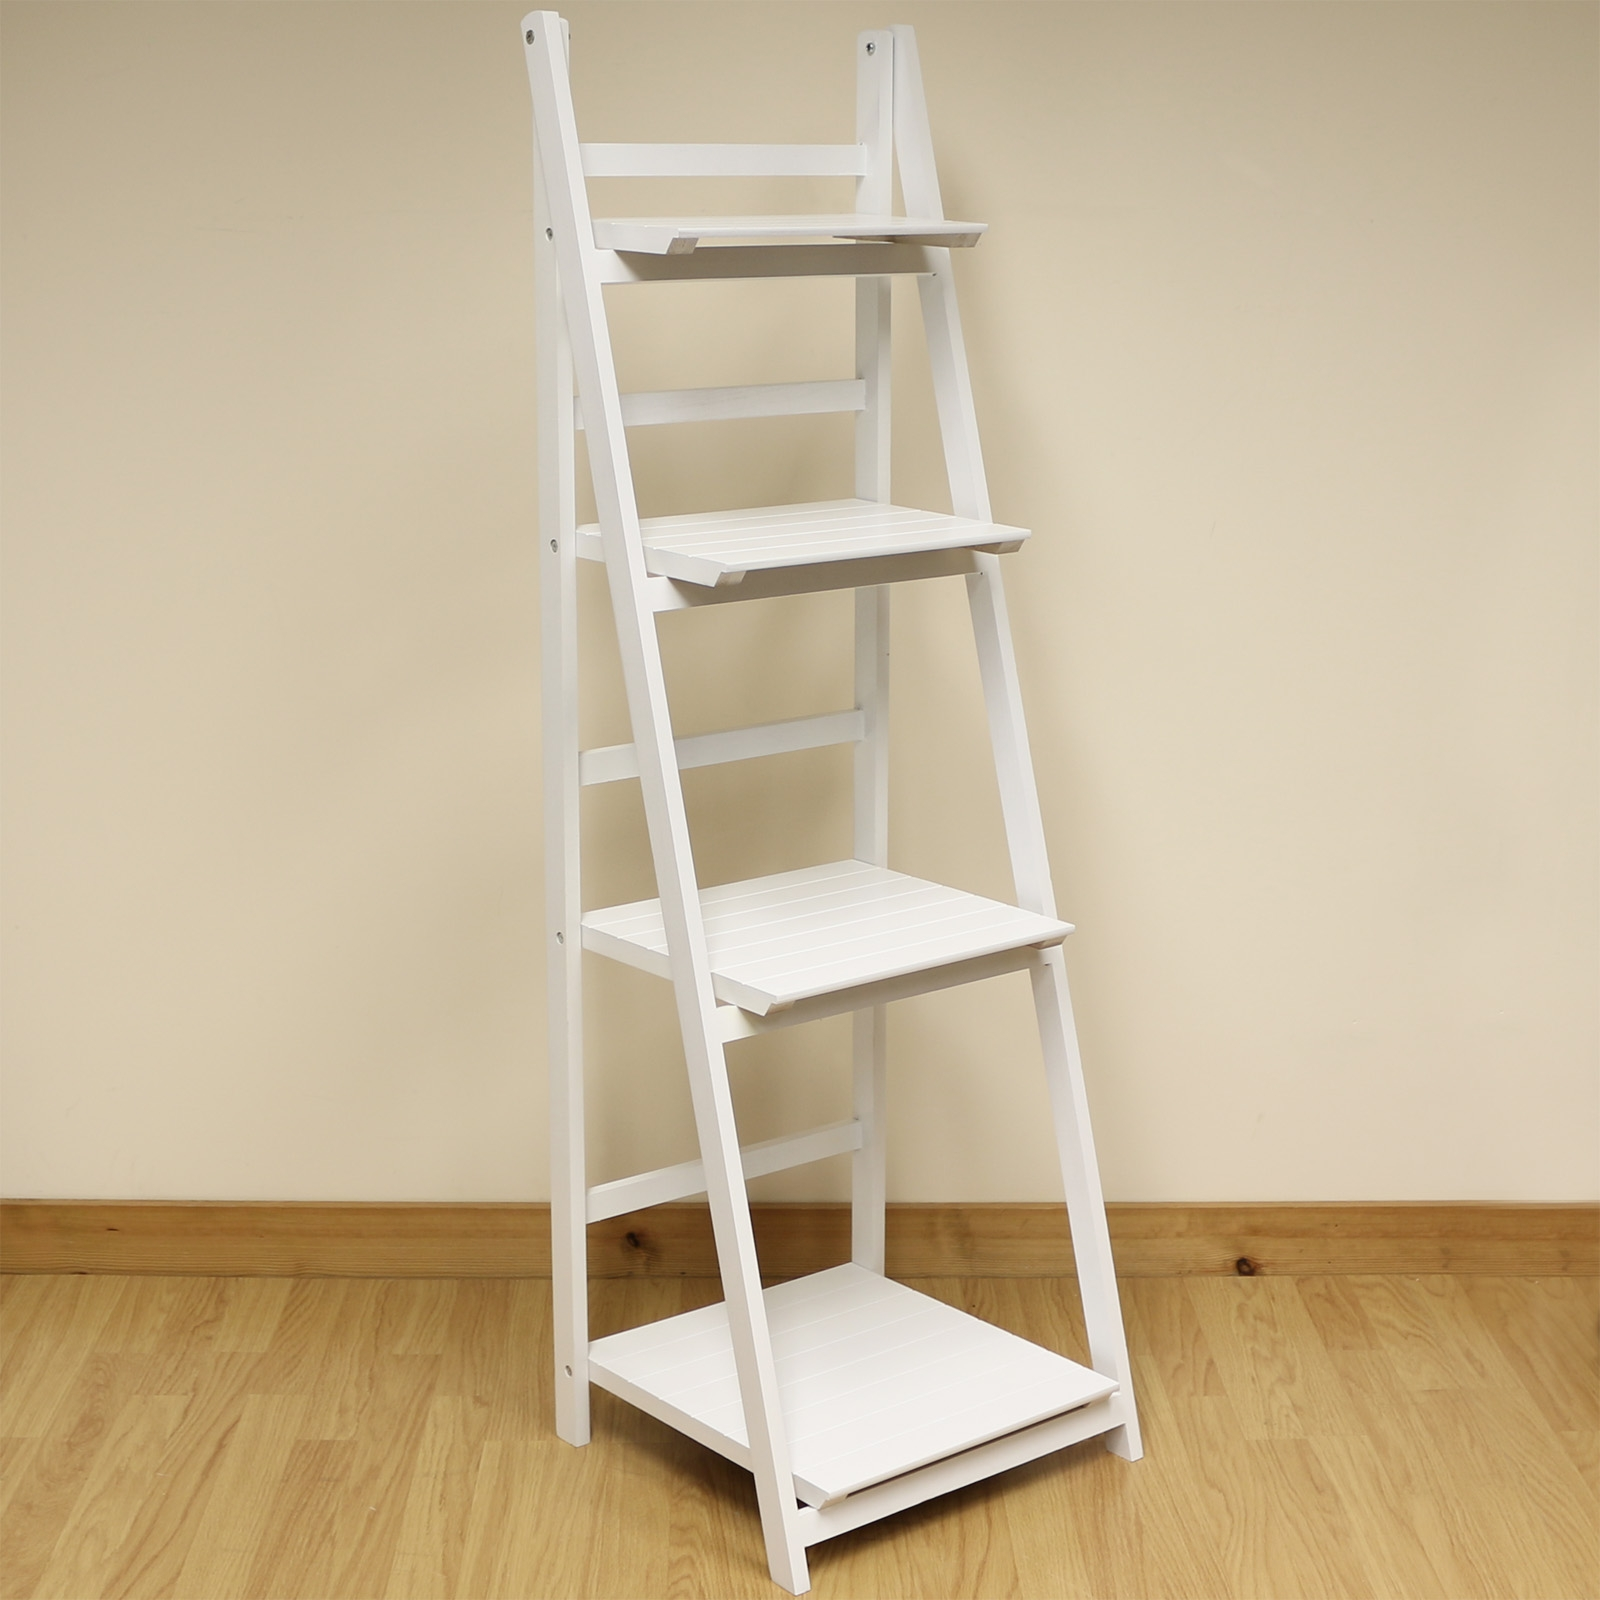 4 Tier White Ladder Shelf Display Unit Free Standingfolding Book Throughout White Ladder Shelf (View 8 of 15)